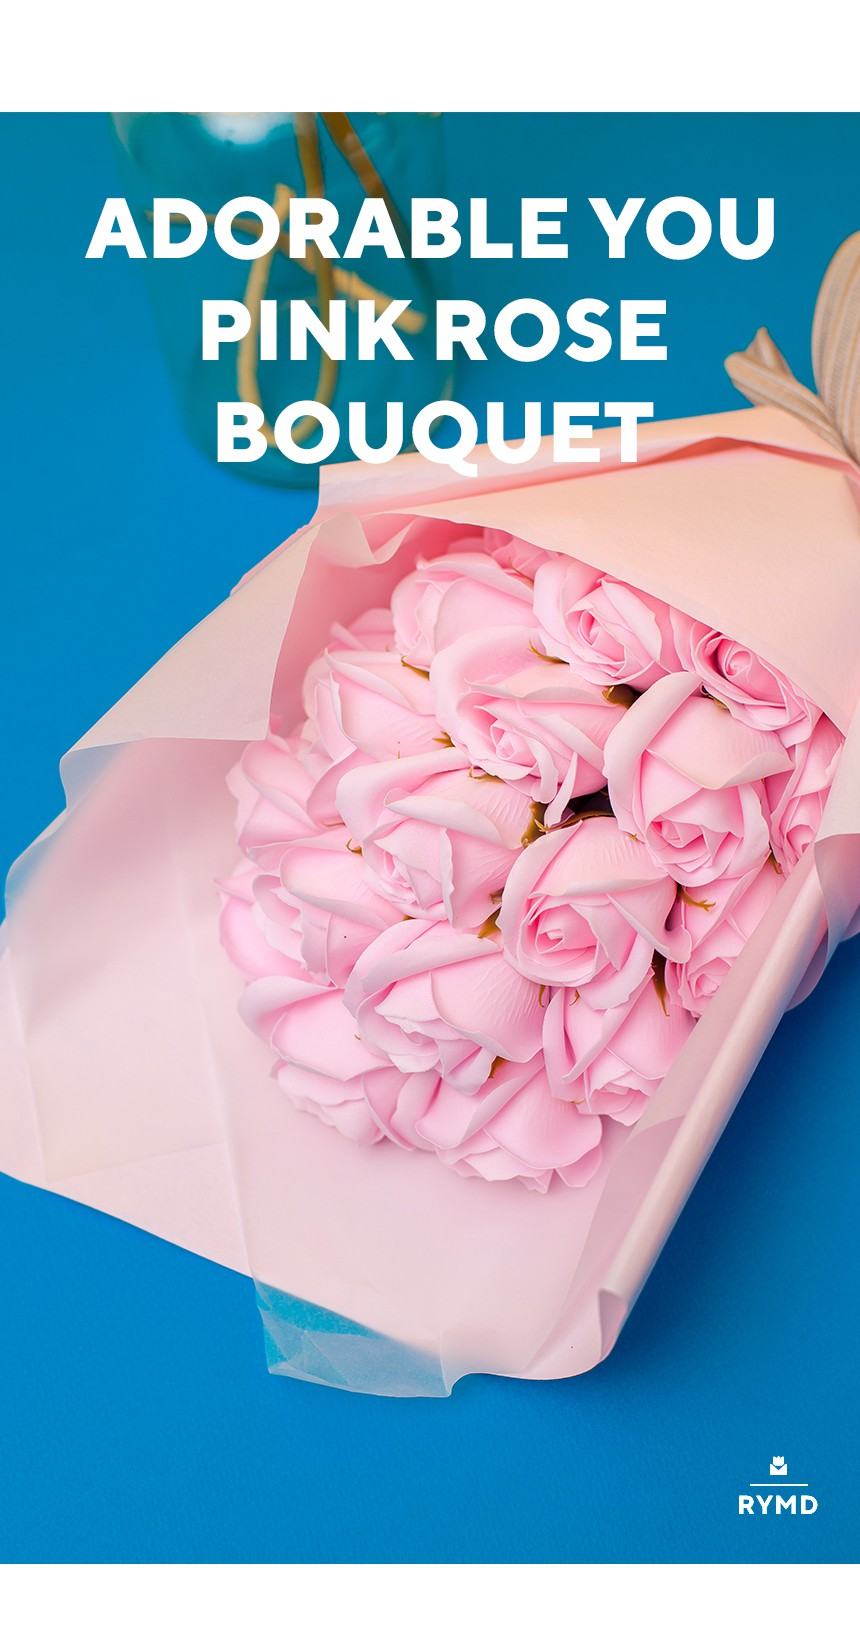 ADORABLE-BOUQUET_04.jpg